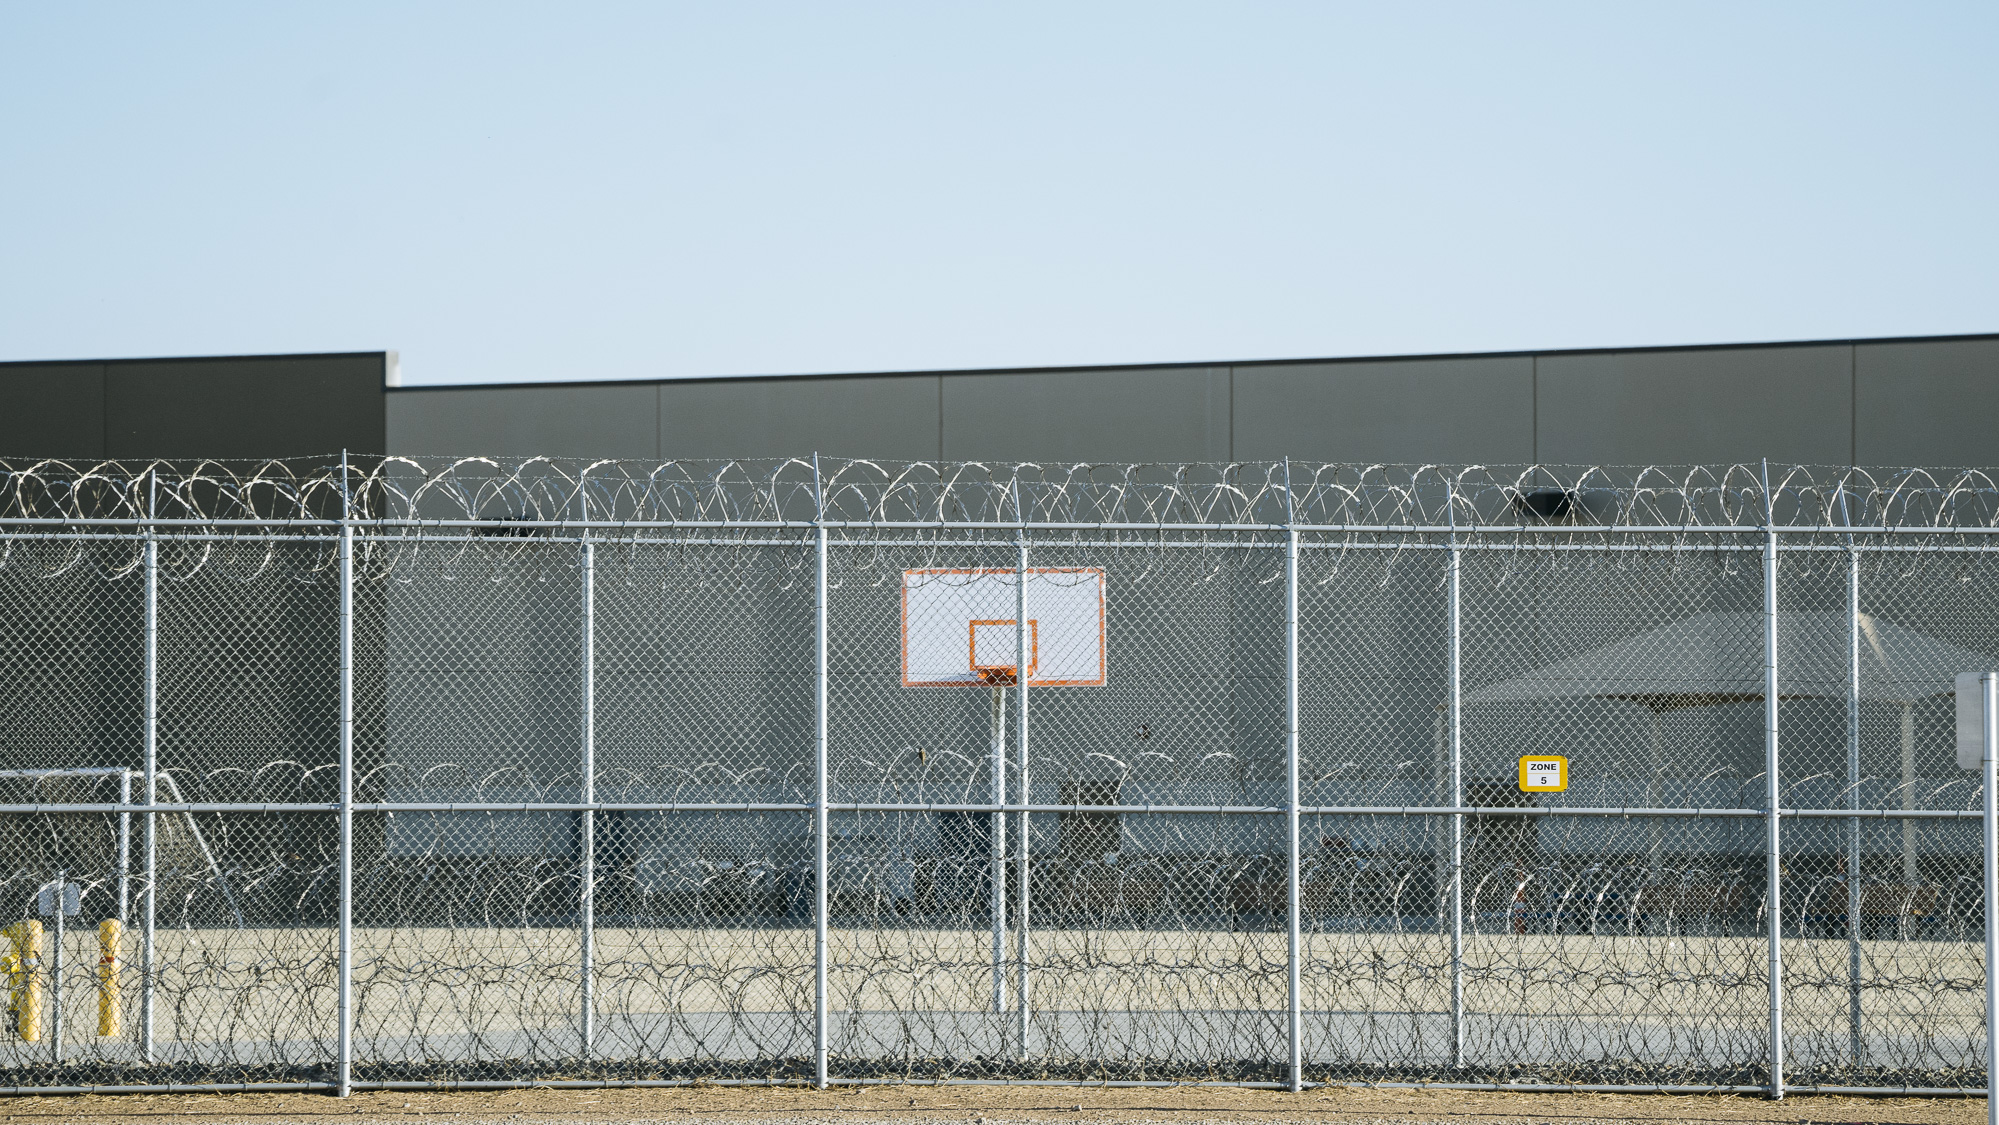 IMAGE CAPTION:  Imperial Regional Detention Facility in Calexico, California, is an ICE facility operated and owned by the private prison contractor CoreCivic (formerly Corrections Corporation of America).CCA's revenues in 2015 were $1.79bn.